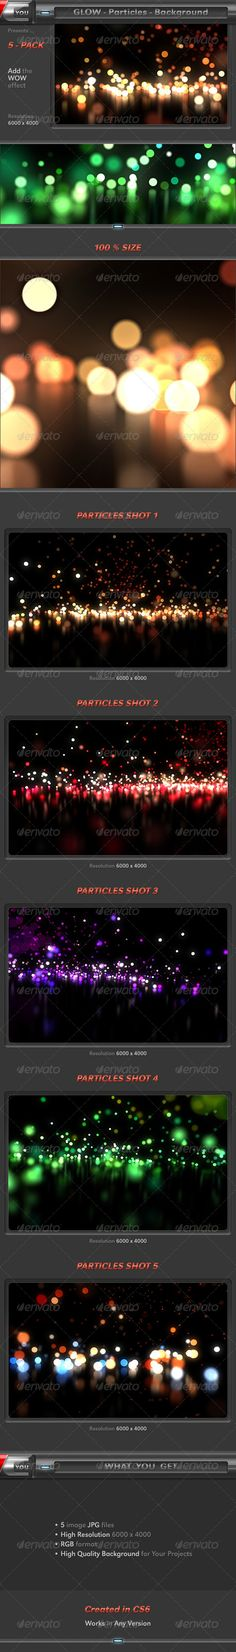 Glow Particles Pack — JPG Image #dark #beauty • Available here → https://graphicriver.net/item/glow-particles-pack/5906499?ref=pxcr